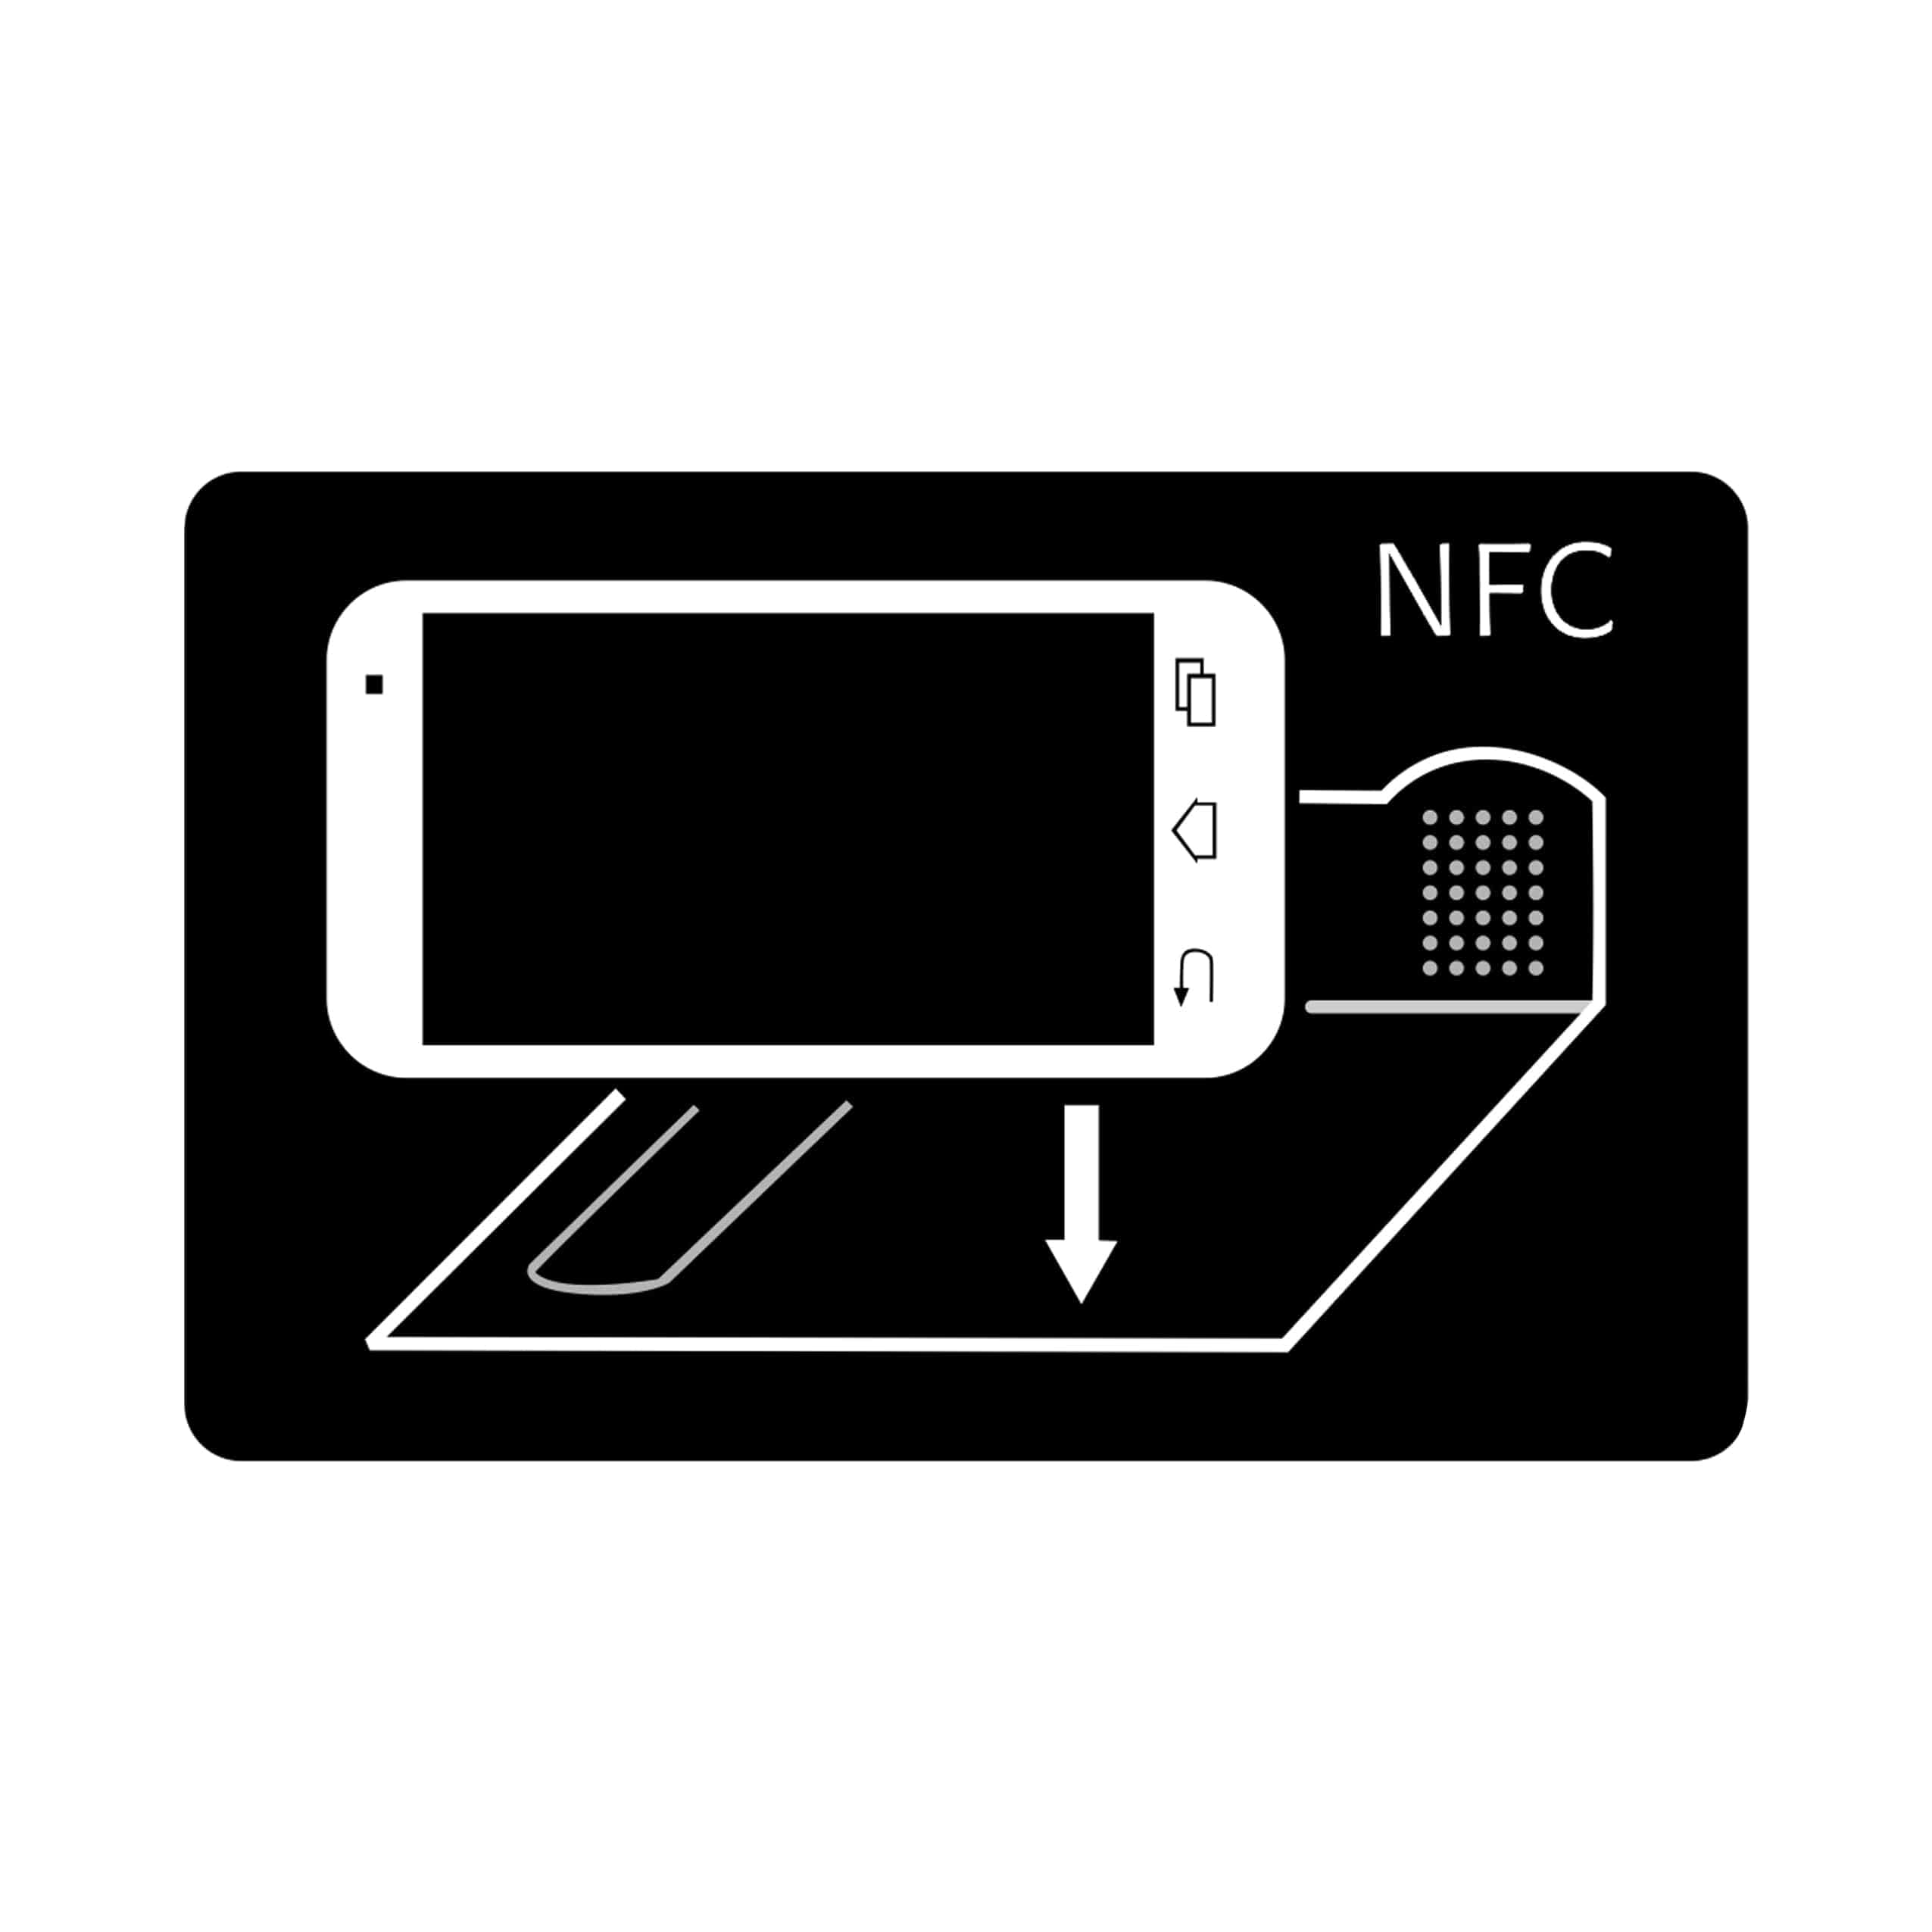 NFC TAG GOOGLE CARDBOARD From Xinyetong